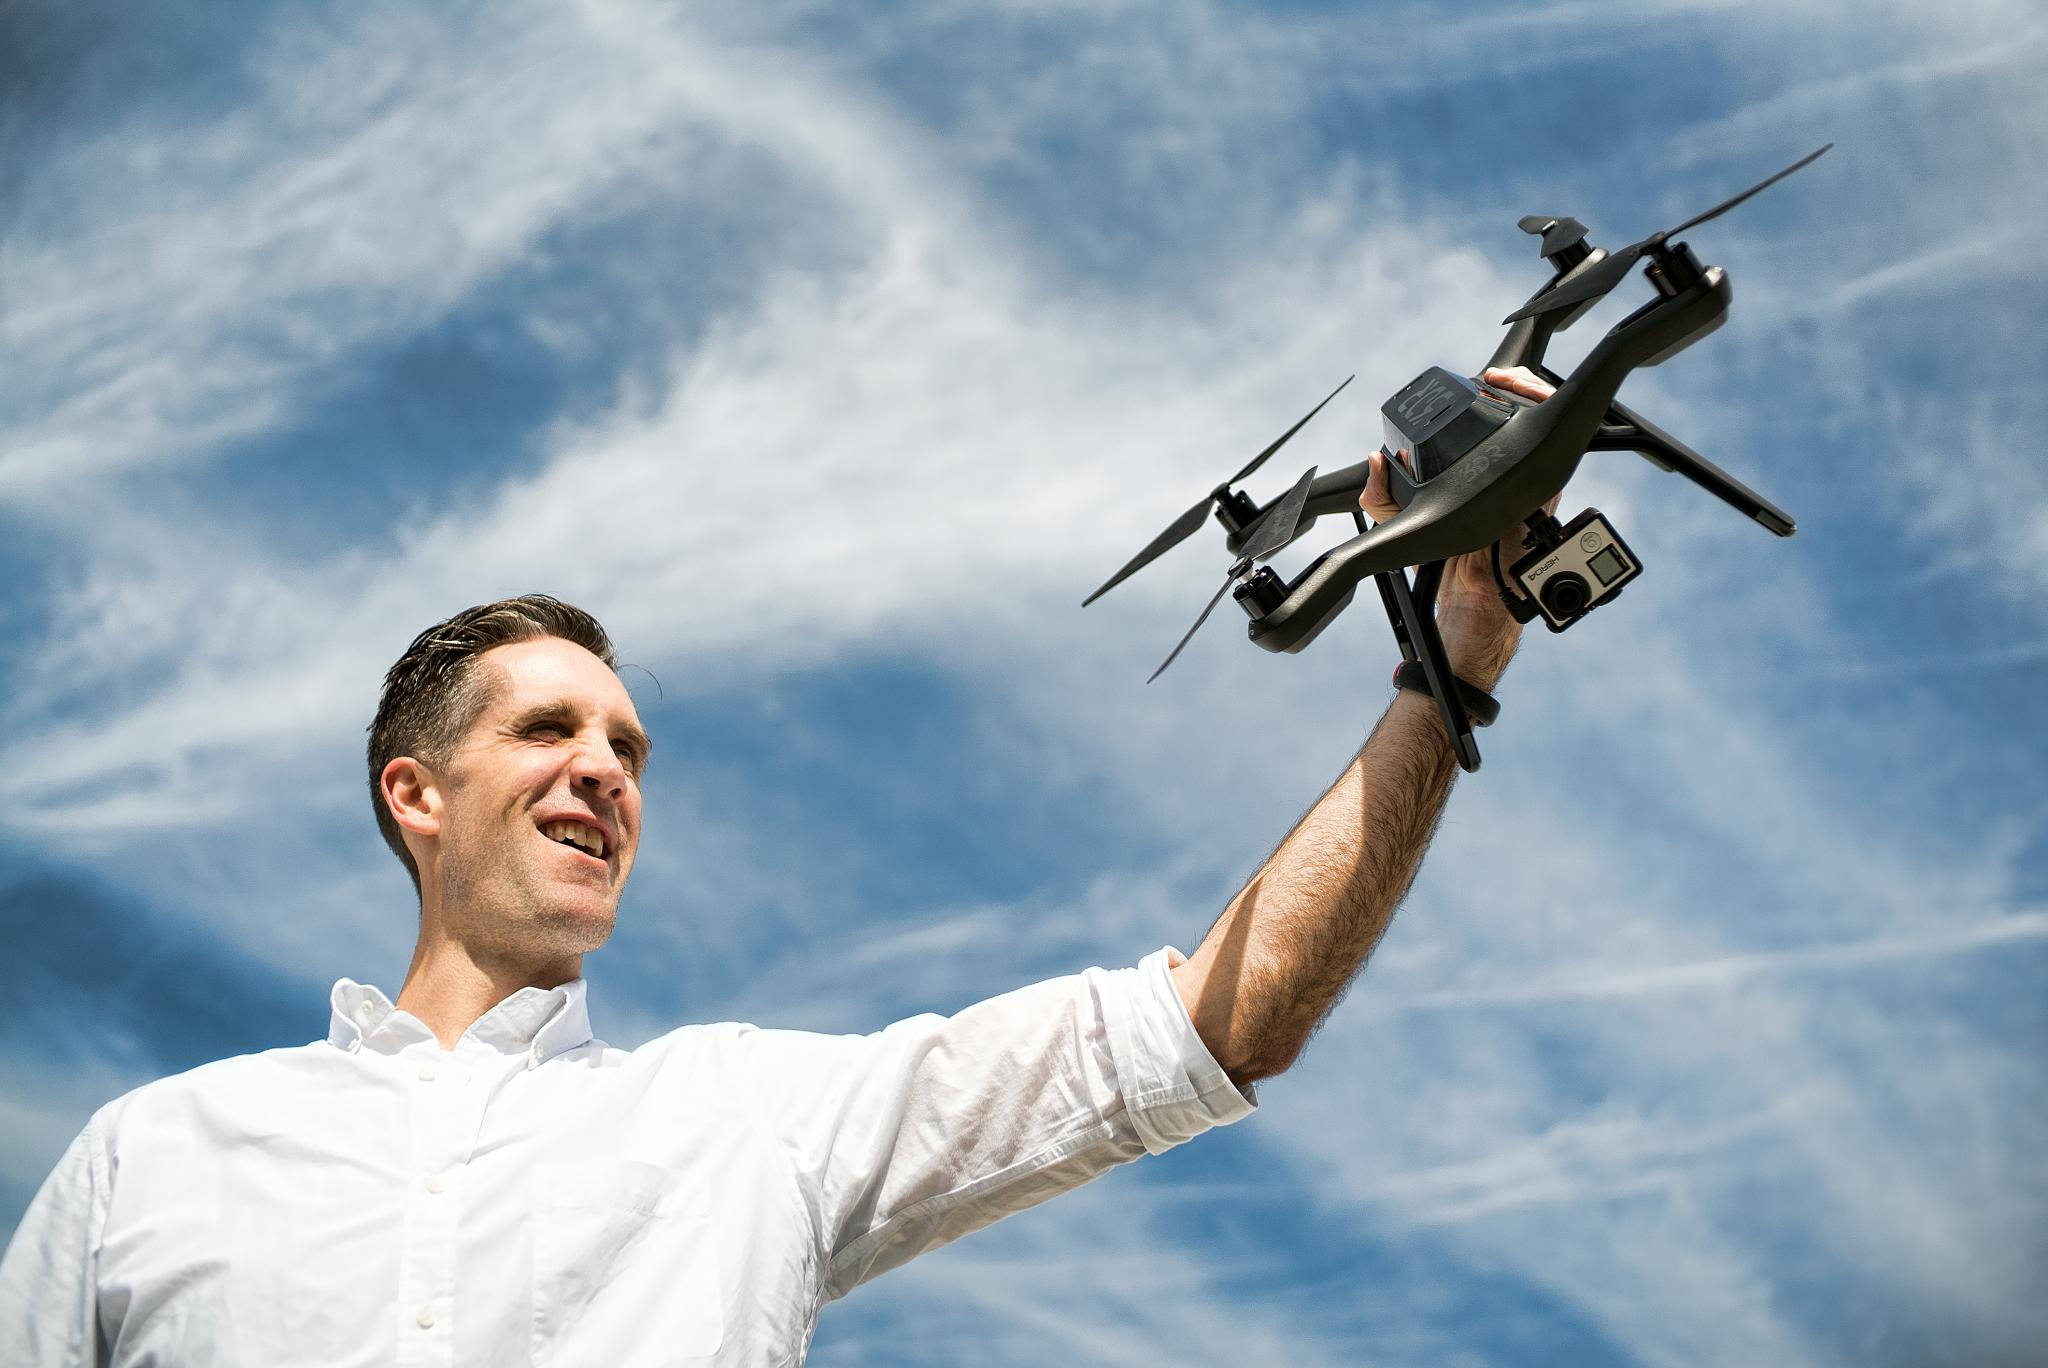 3DR Solo Drone, Christopher Michel February 26, 2015